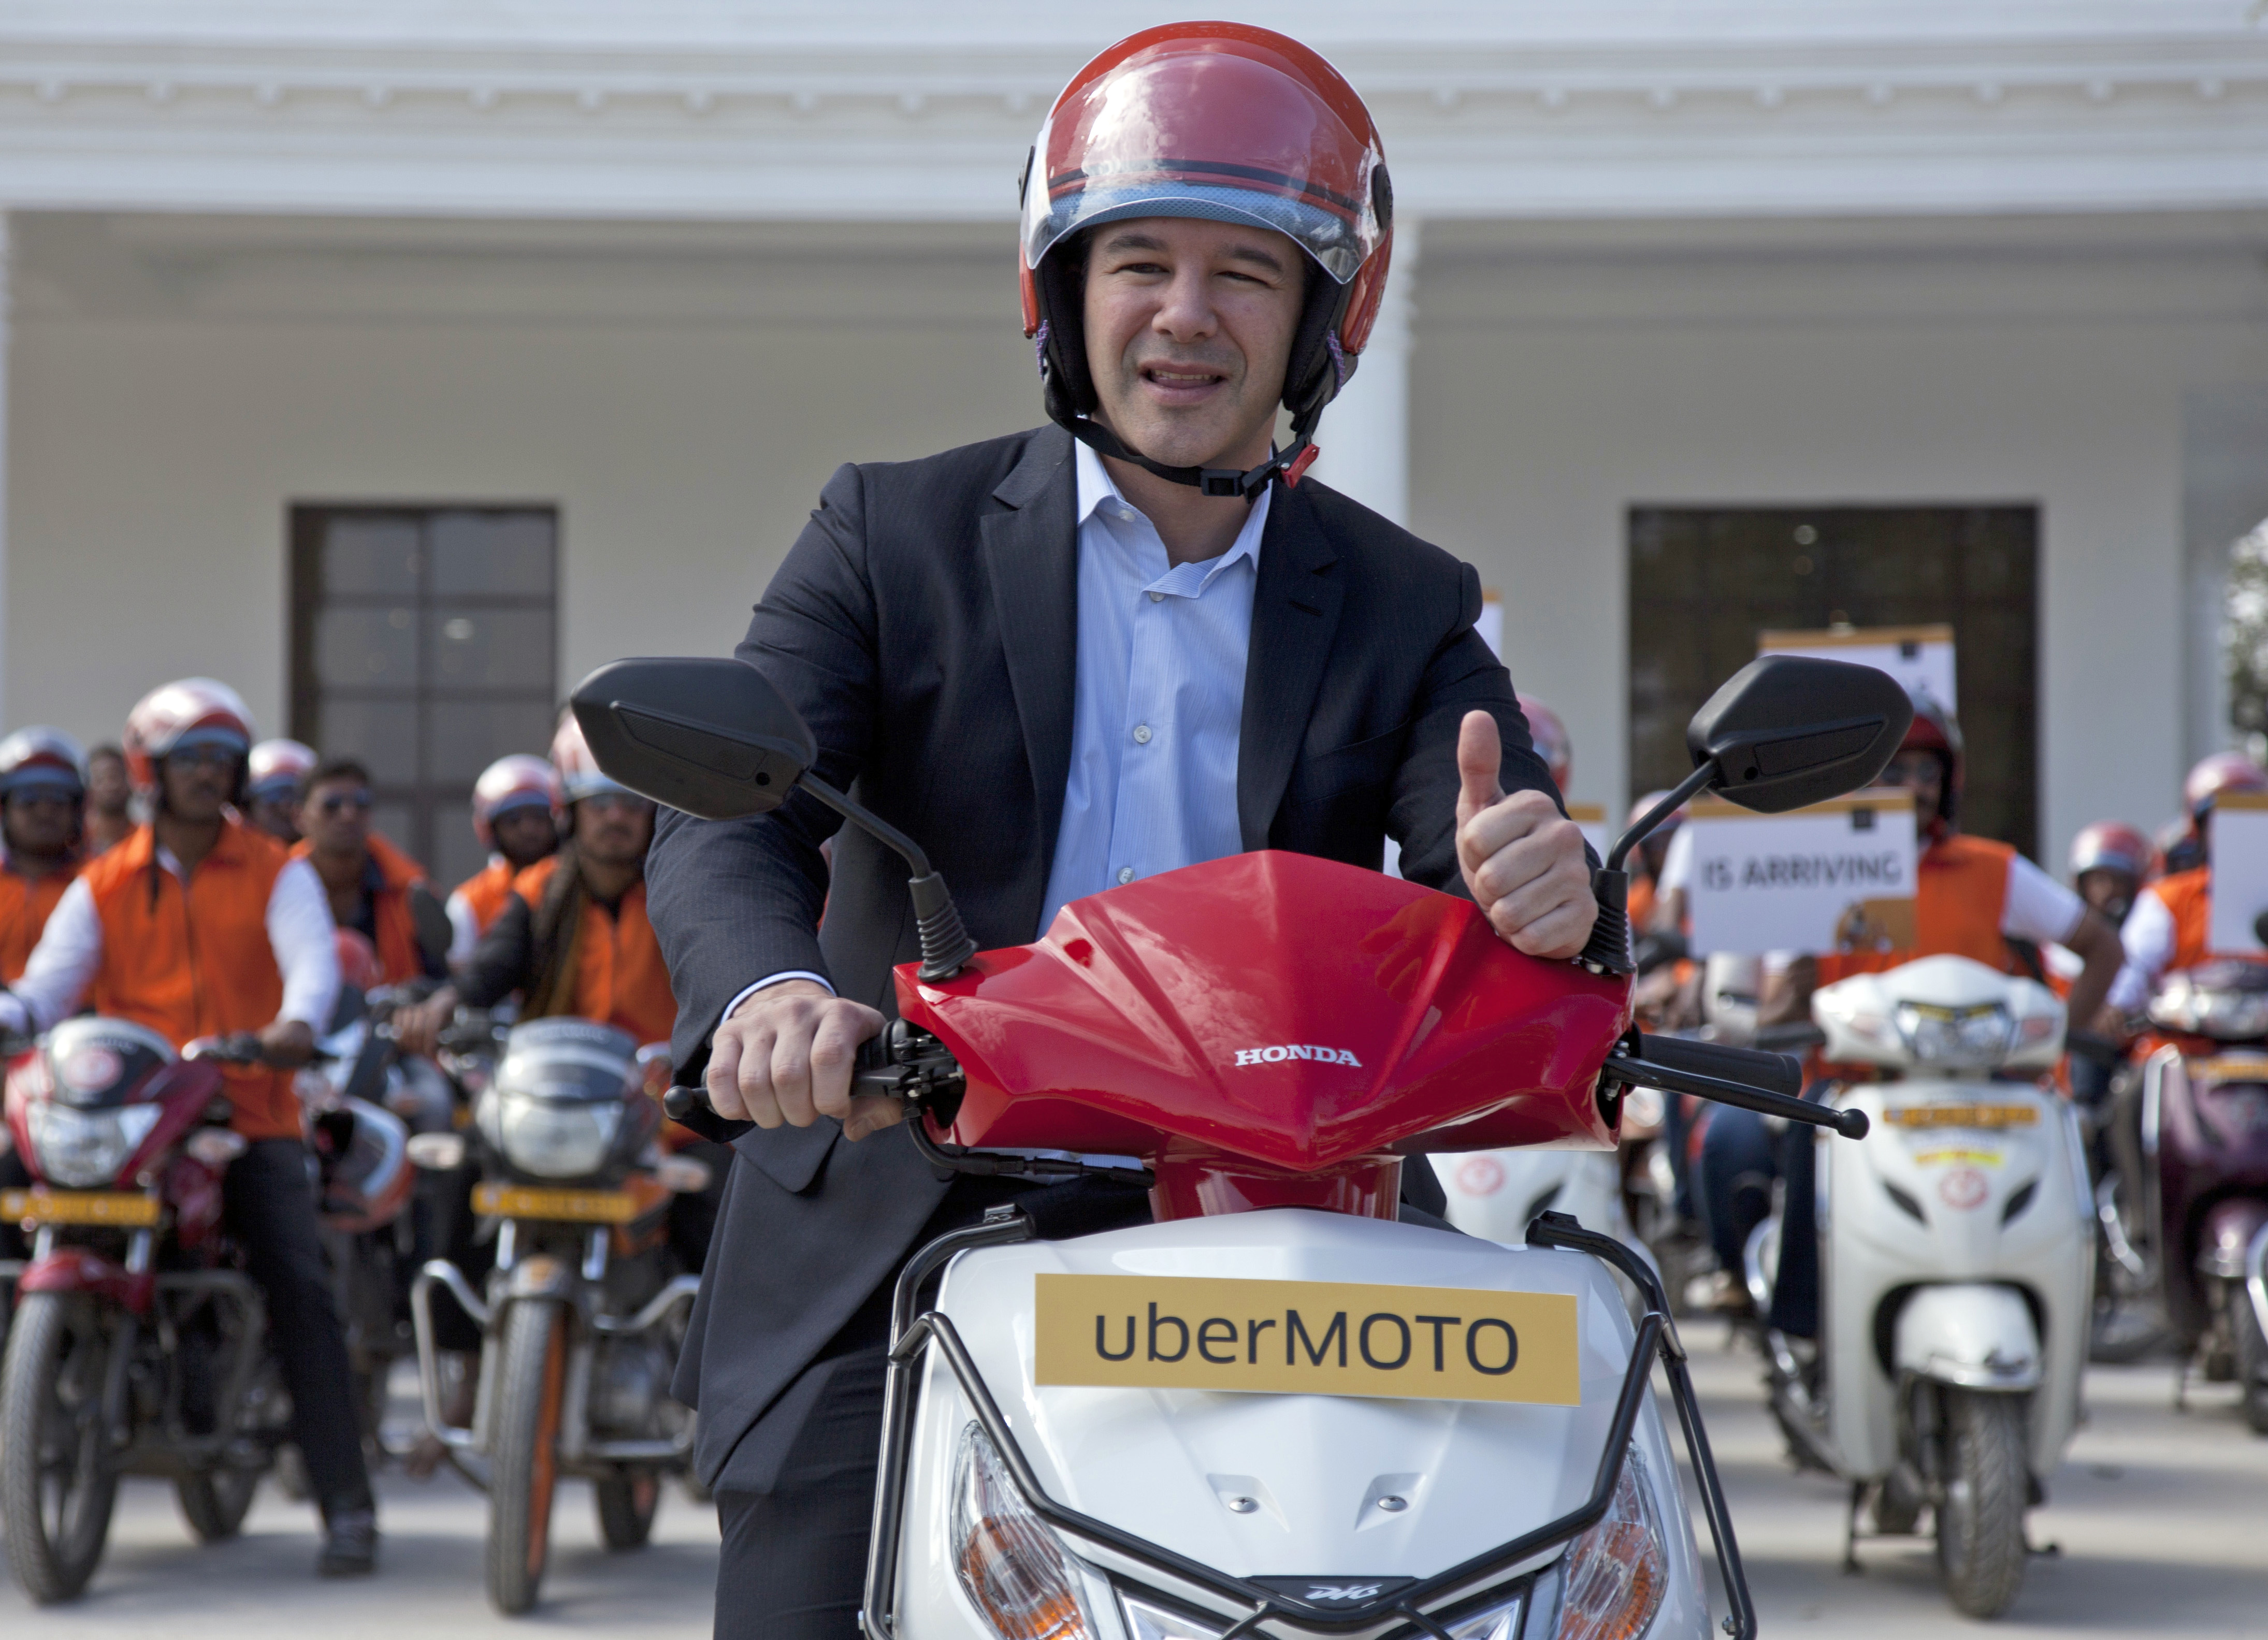 Uber CEO Travis Kalanick, during the launch of its bike-sharing product, uberMOTO, in Hyderabad, India on Dec. 13, 2016. (AP Photo/Mahesh Kumar A., File)